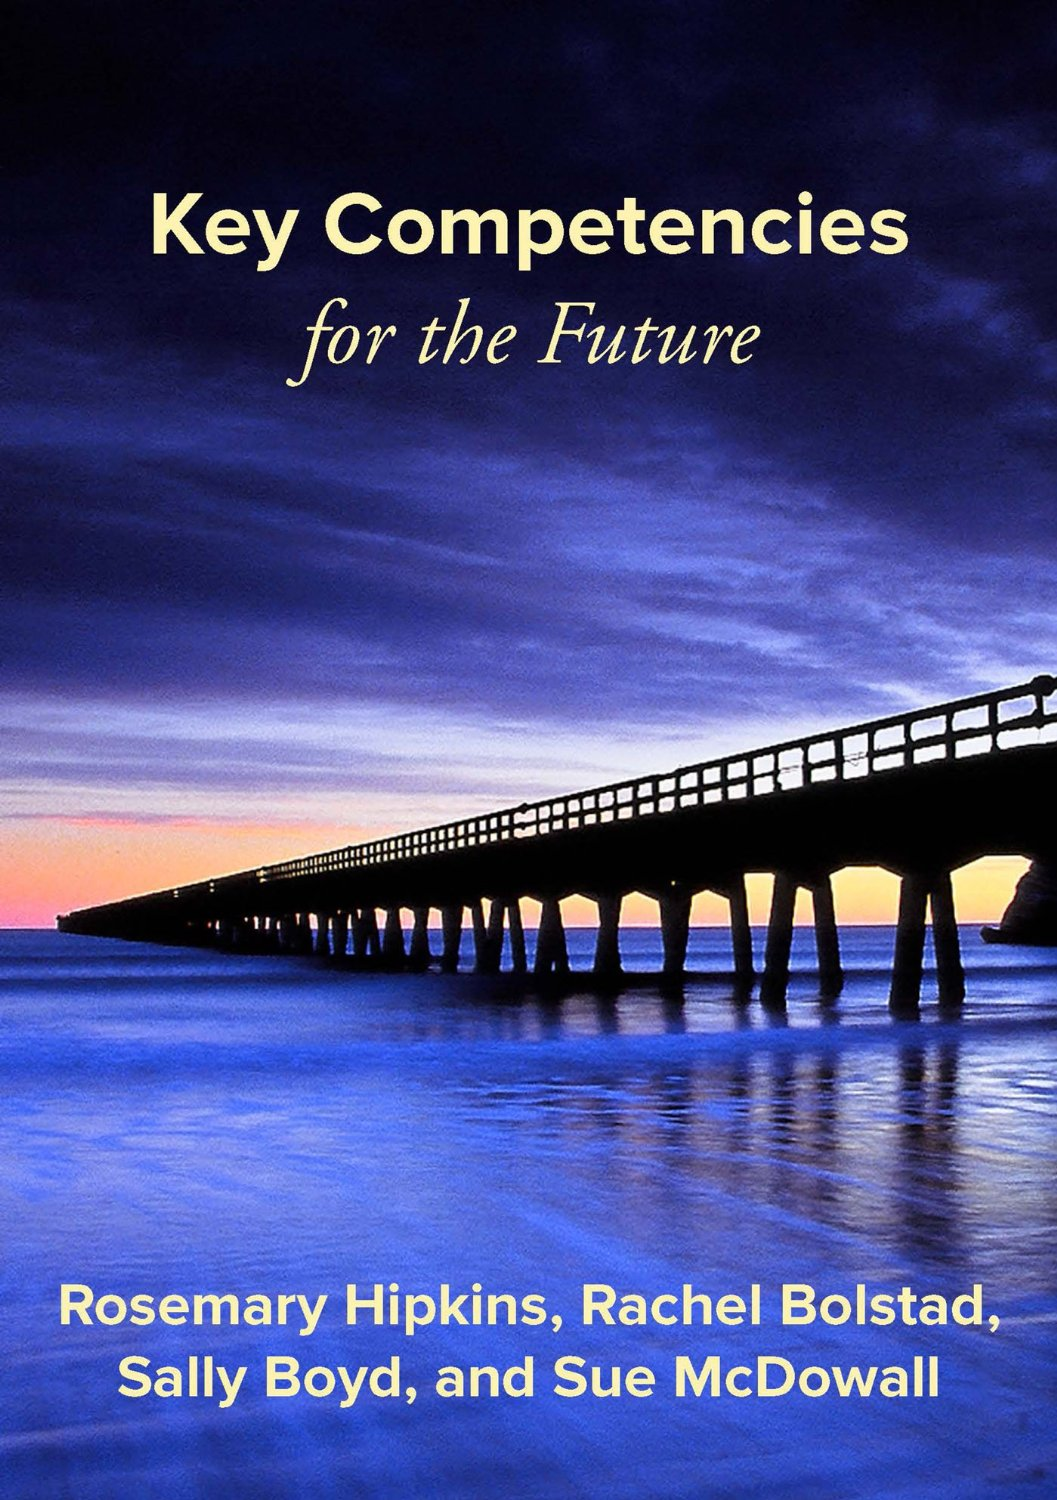 Cey Competencies